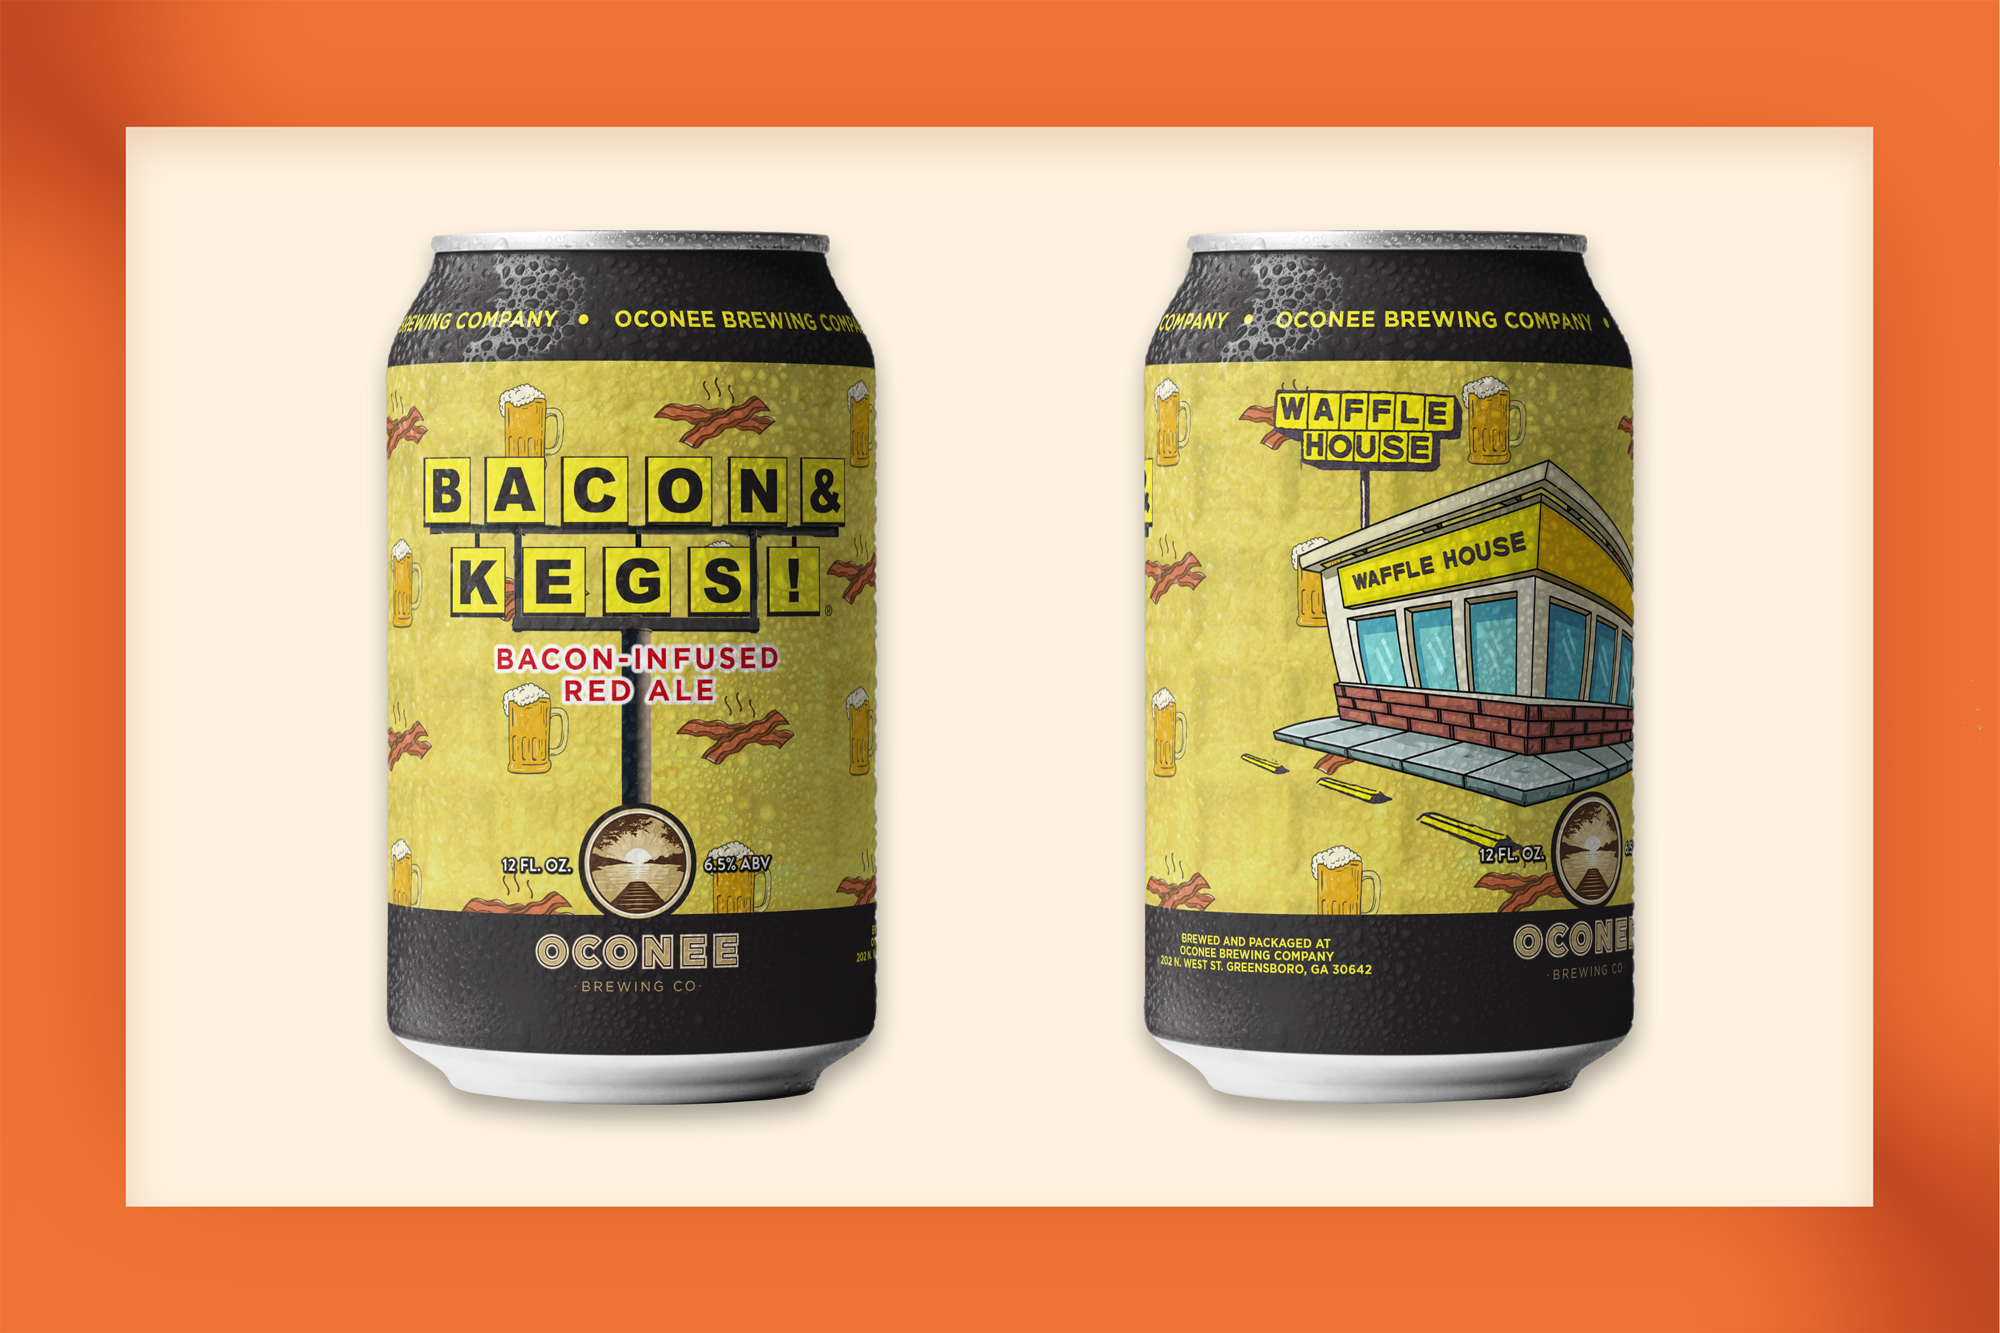 Bacon & Kegs Beer